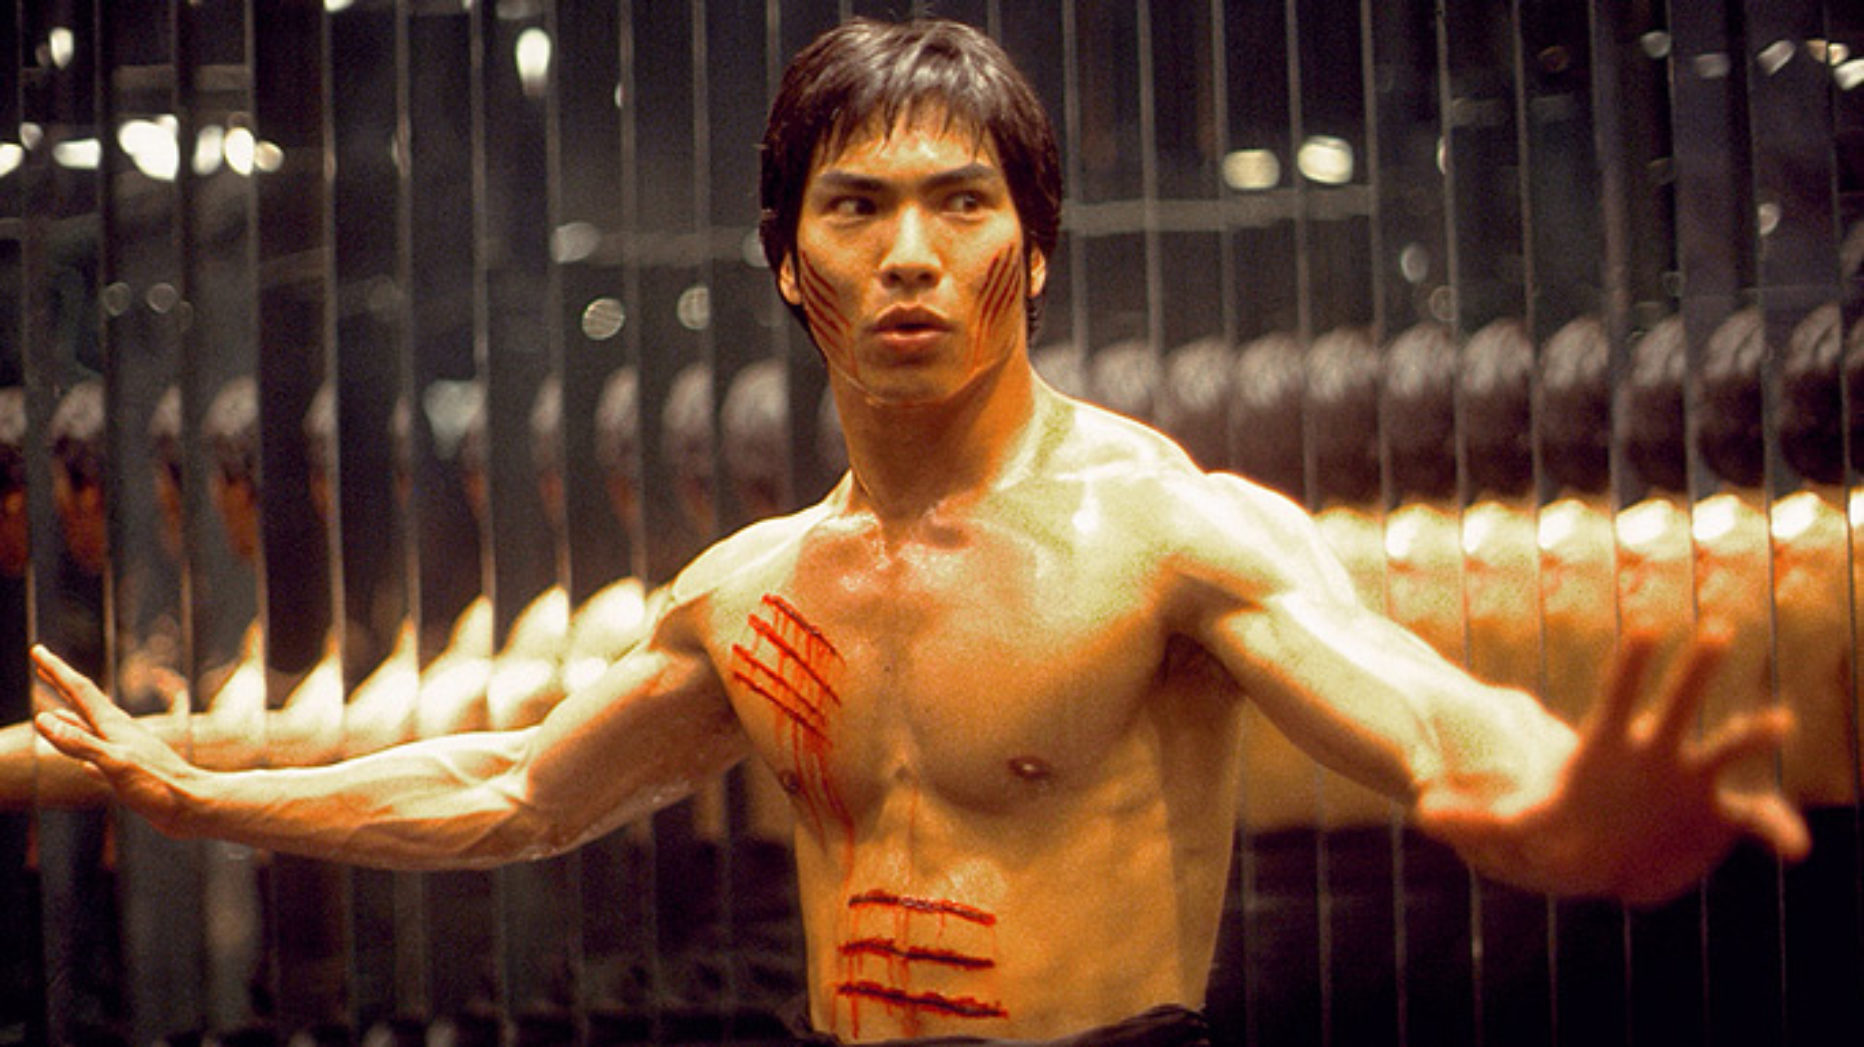 Props to Jason Scott Lee for his portrayal of Bruce Lee